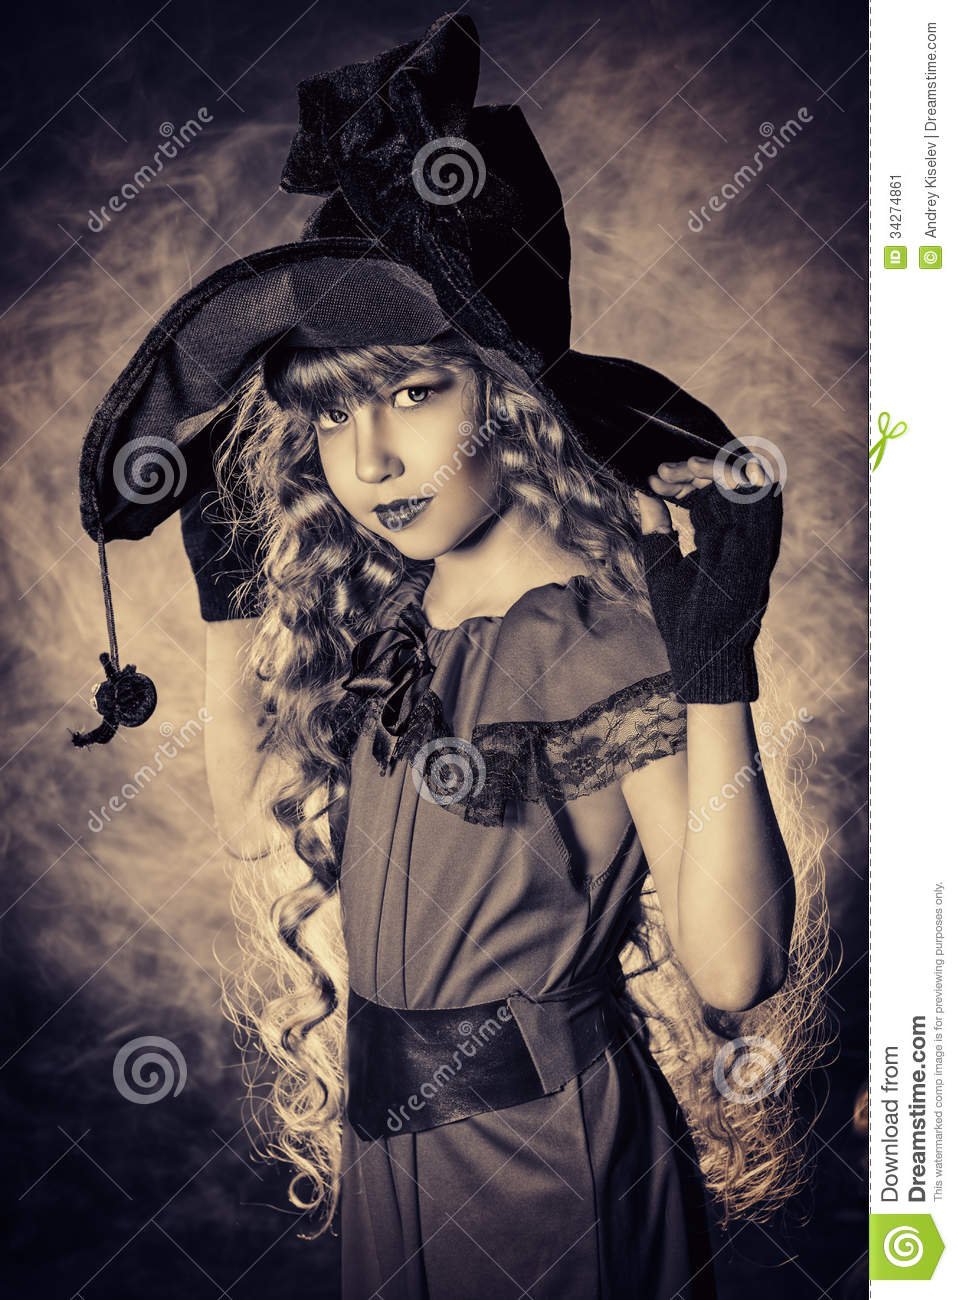 Retro Witch Stock Image - Image: 34274861